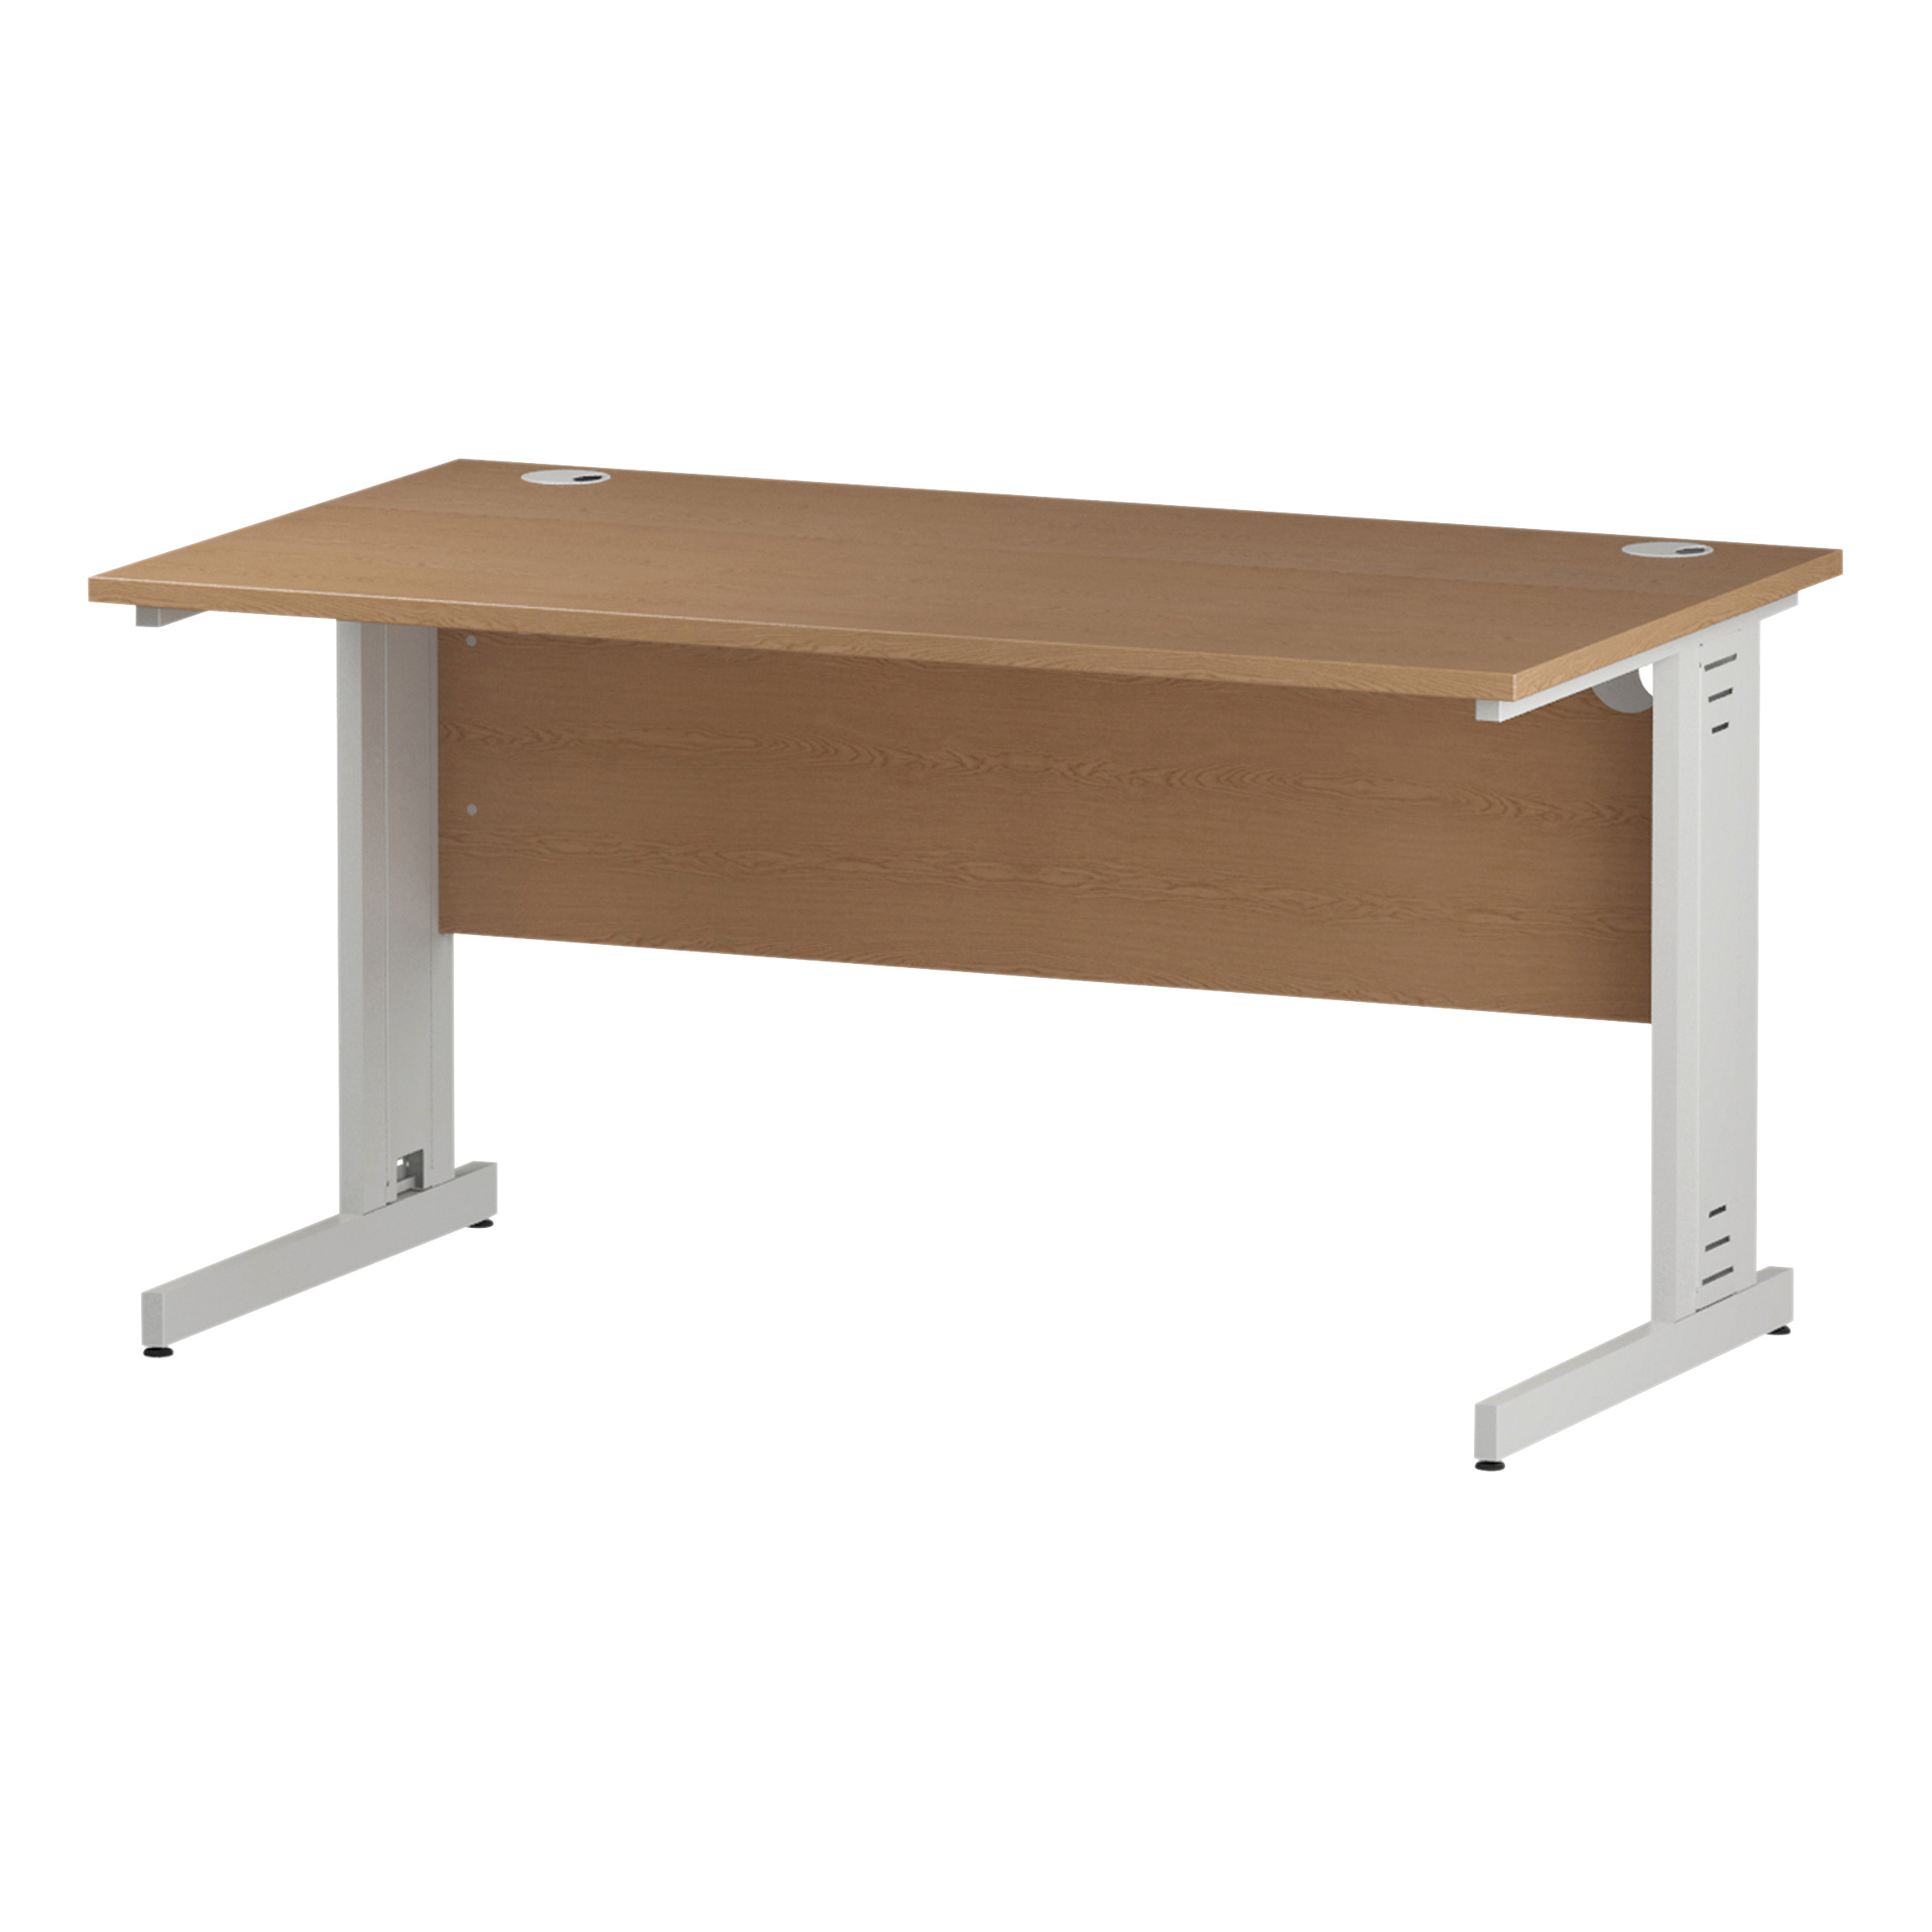 Trexus Rectangular Desk White Cable Managed Leg 1400x800mm Oak Ref I002724